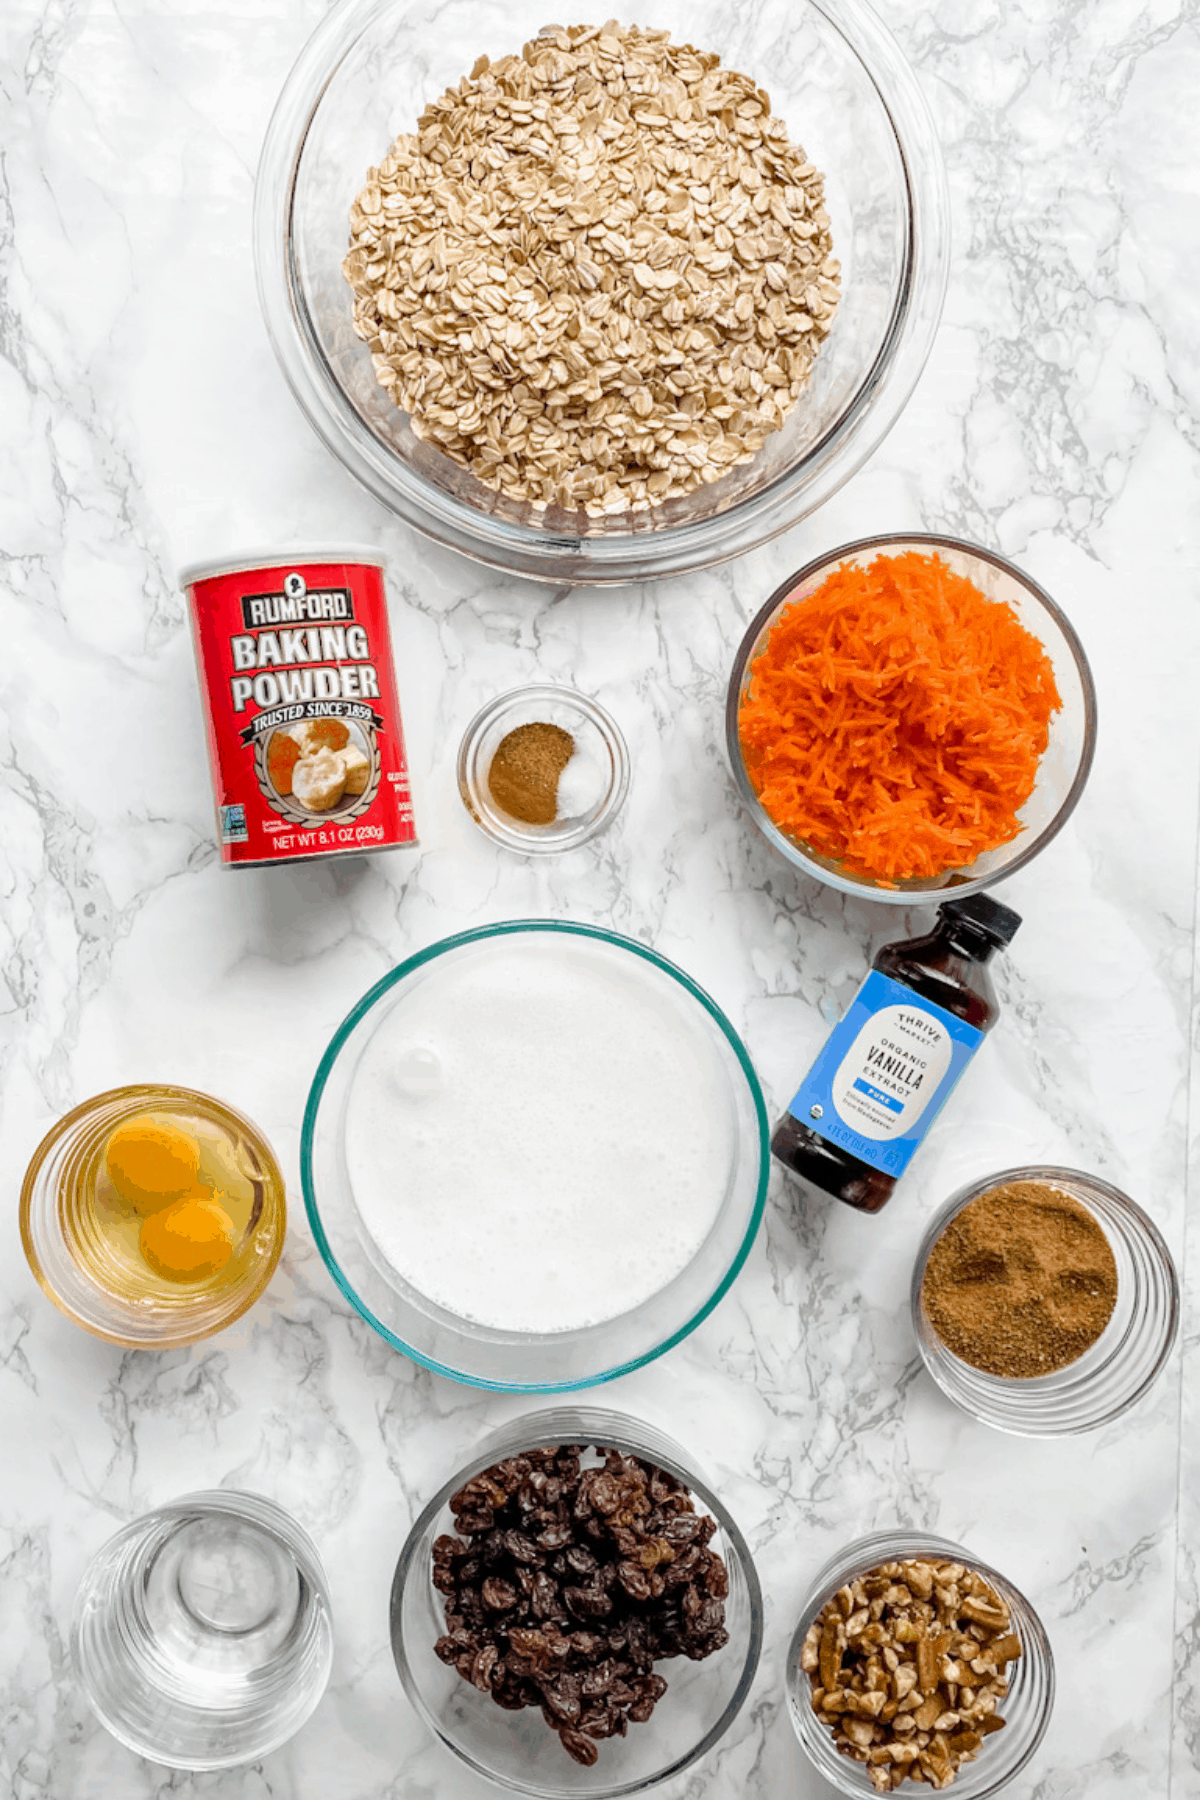 All of the ingredients to make carrot cake baked oatmeal